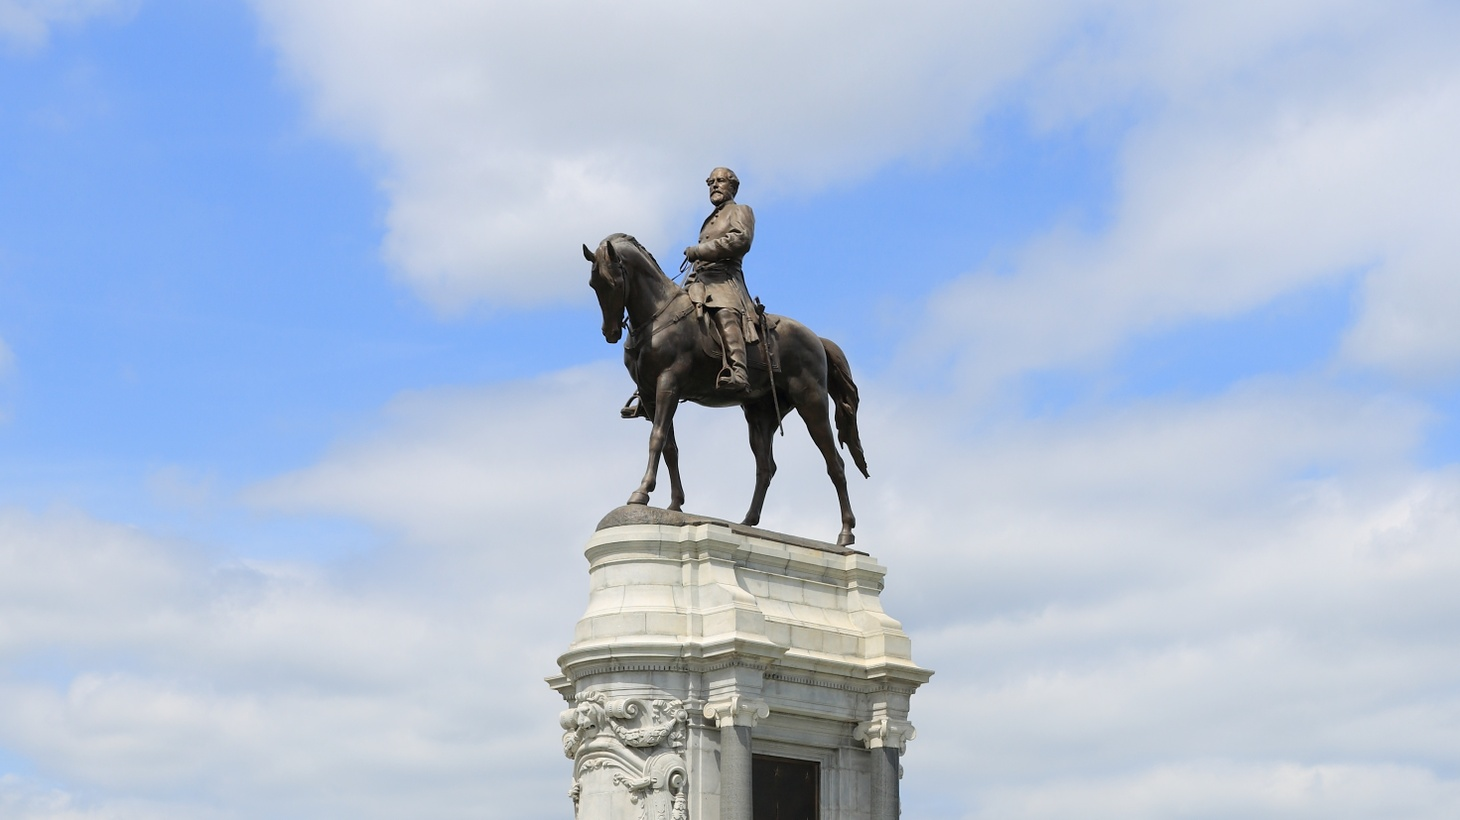 The statue of Robert E. Lee, sculpted in France by Antonin Mercié and unveiled in 1890, is the crowning glory of Monument Avenue in Richmond, Virginia. This image was taken in 2013. Now the statue is spray painted with messages of protest, and the State Gov. Ralph Northam has promised to take it down.